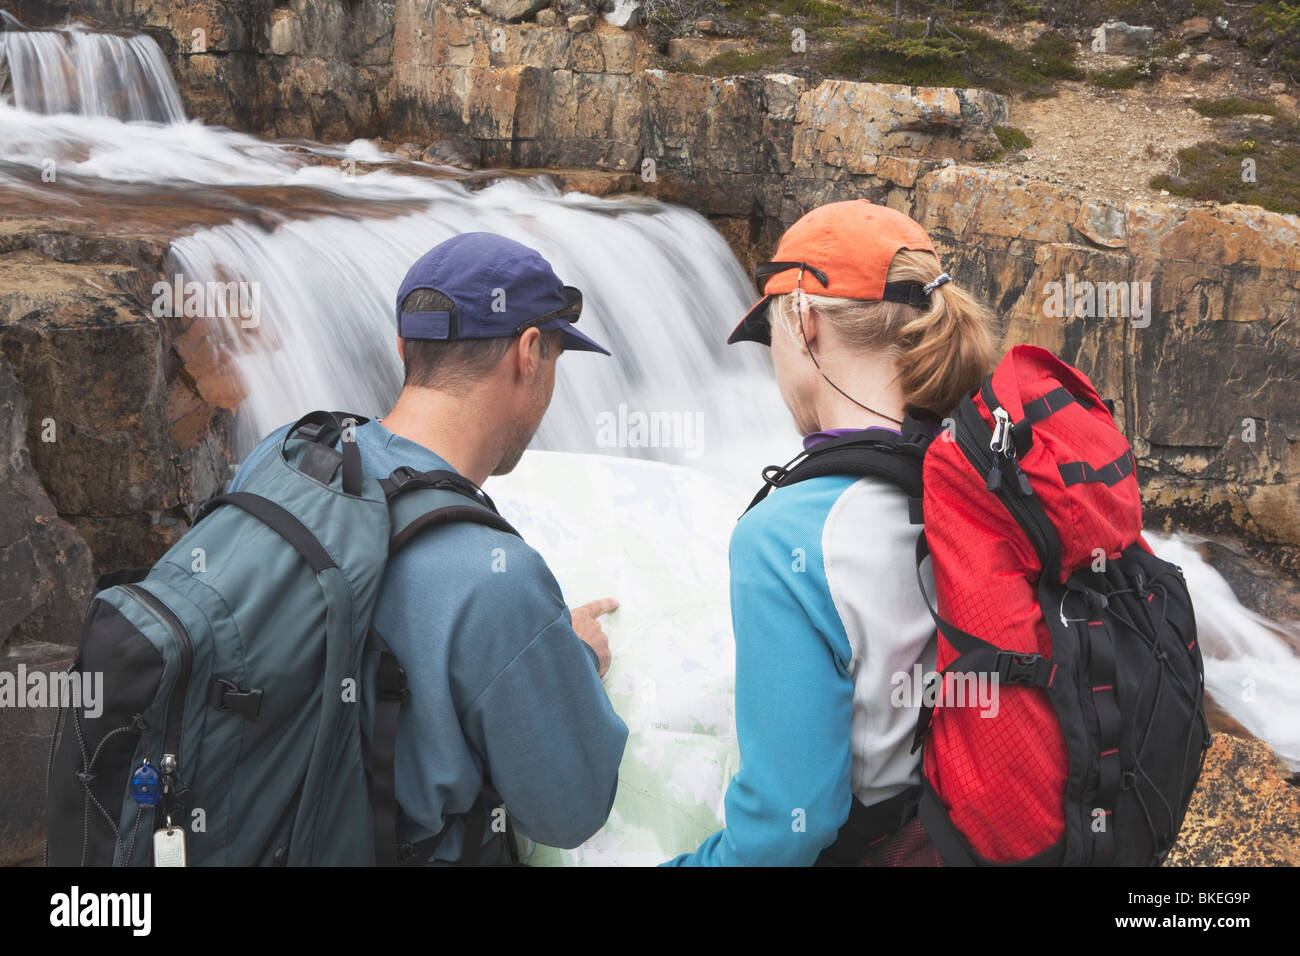 Lake Louise, Alberta, Canada; A Couple Hiking And Looking At A Map Next To The Waterfall At Giant Steps - Stock Image